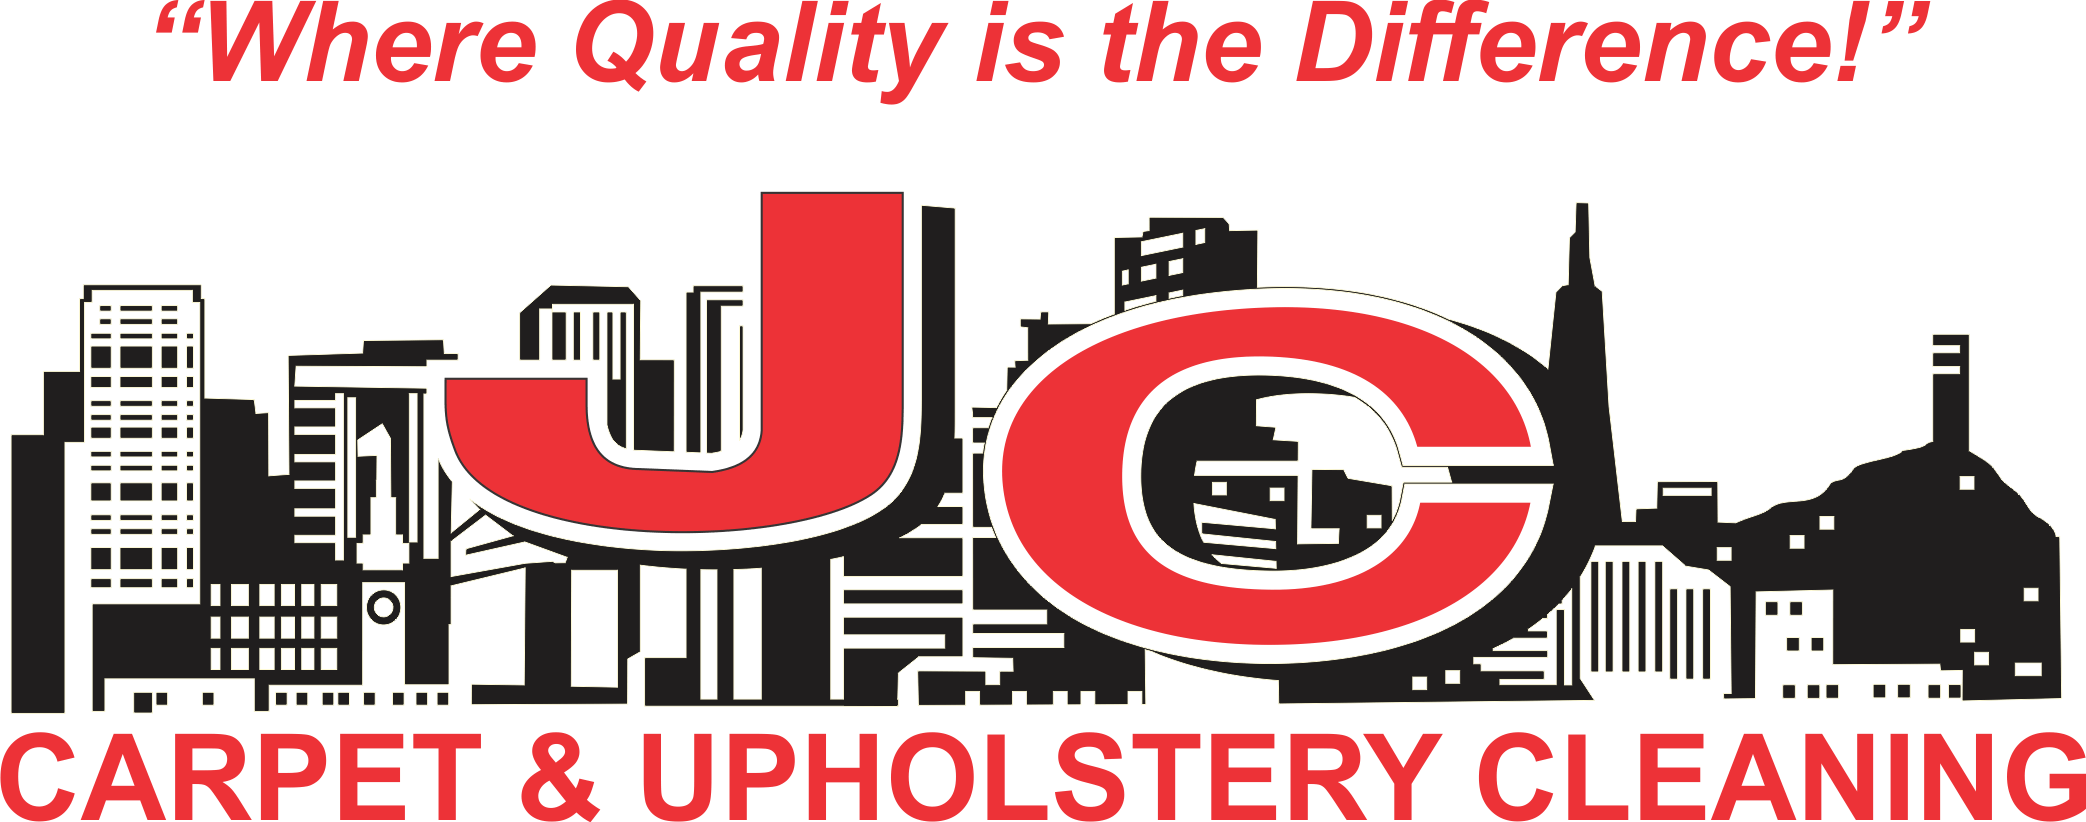 Where Quality Is the Difference! JC Carpet & Upholstery Cleaning Logo